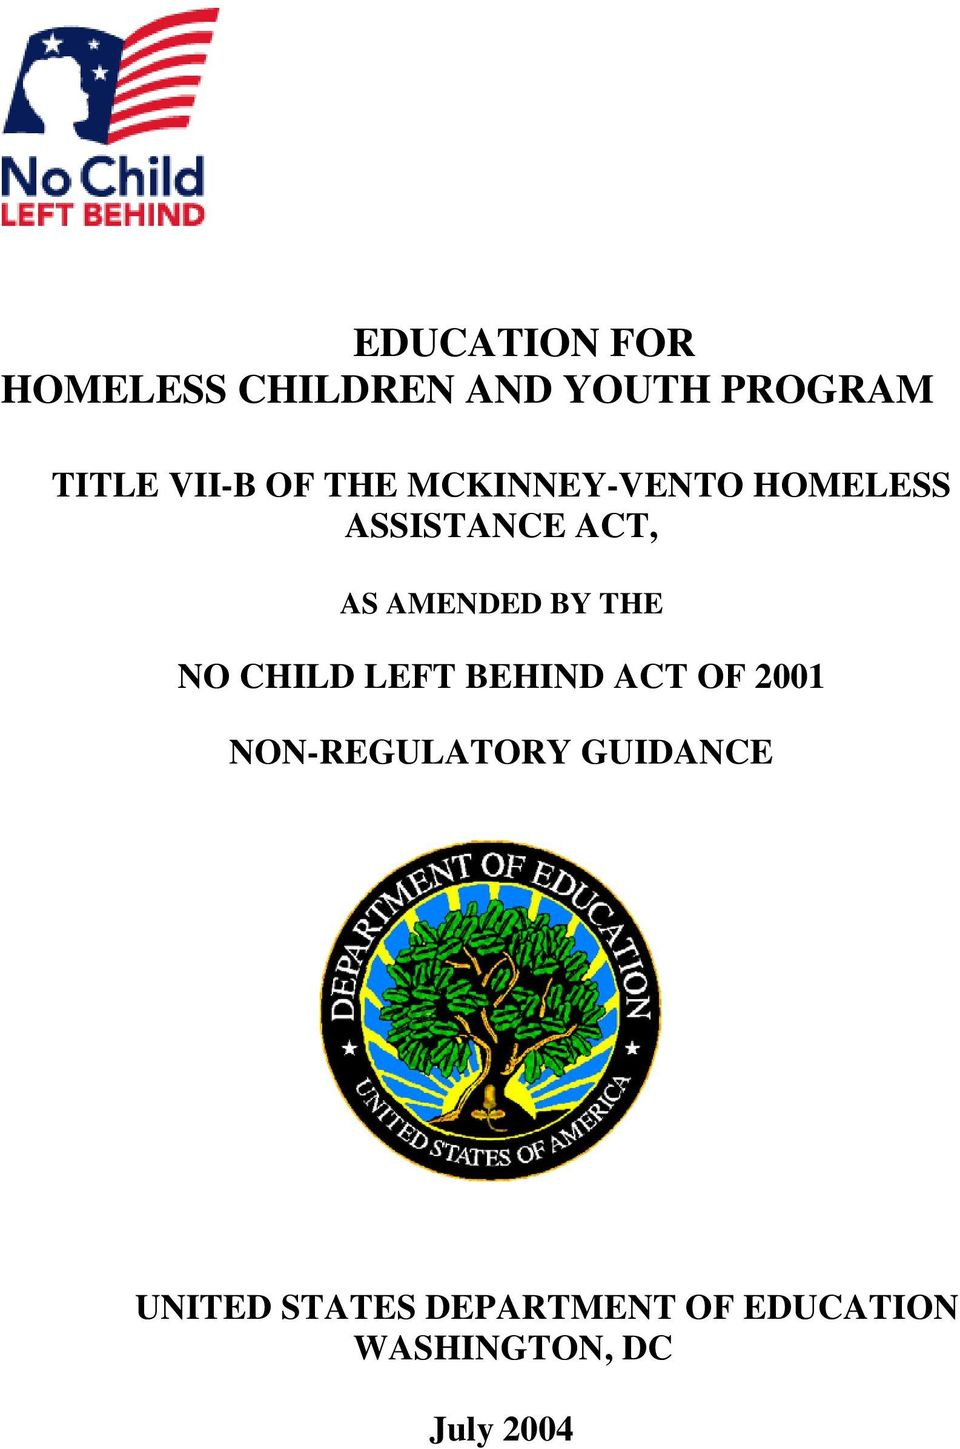 THE NO CHILD LEFT BEHIND ACT OF 2001 NON-REGULATORY GUIDANCE